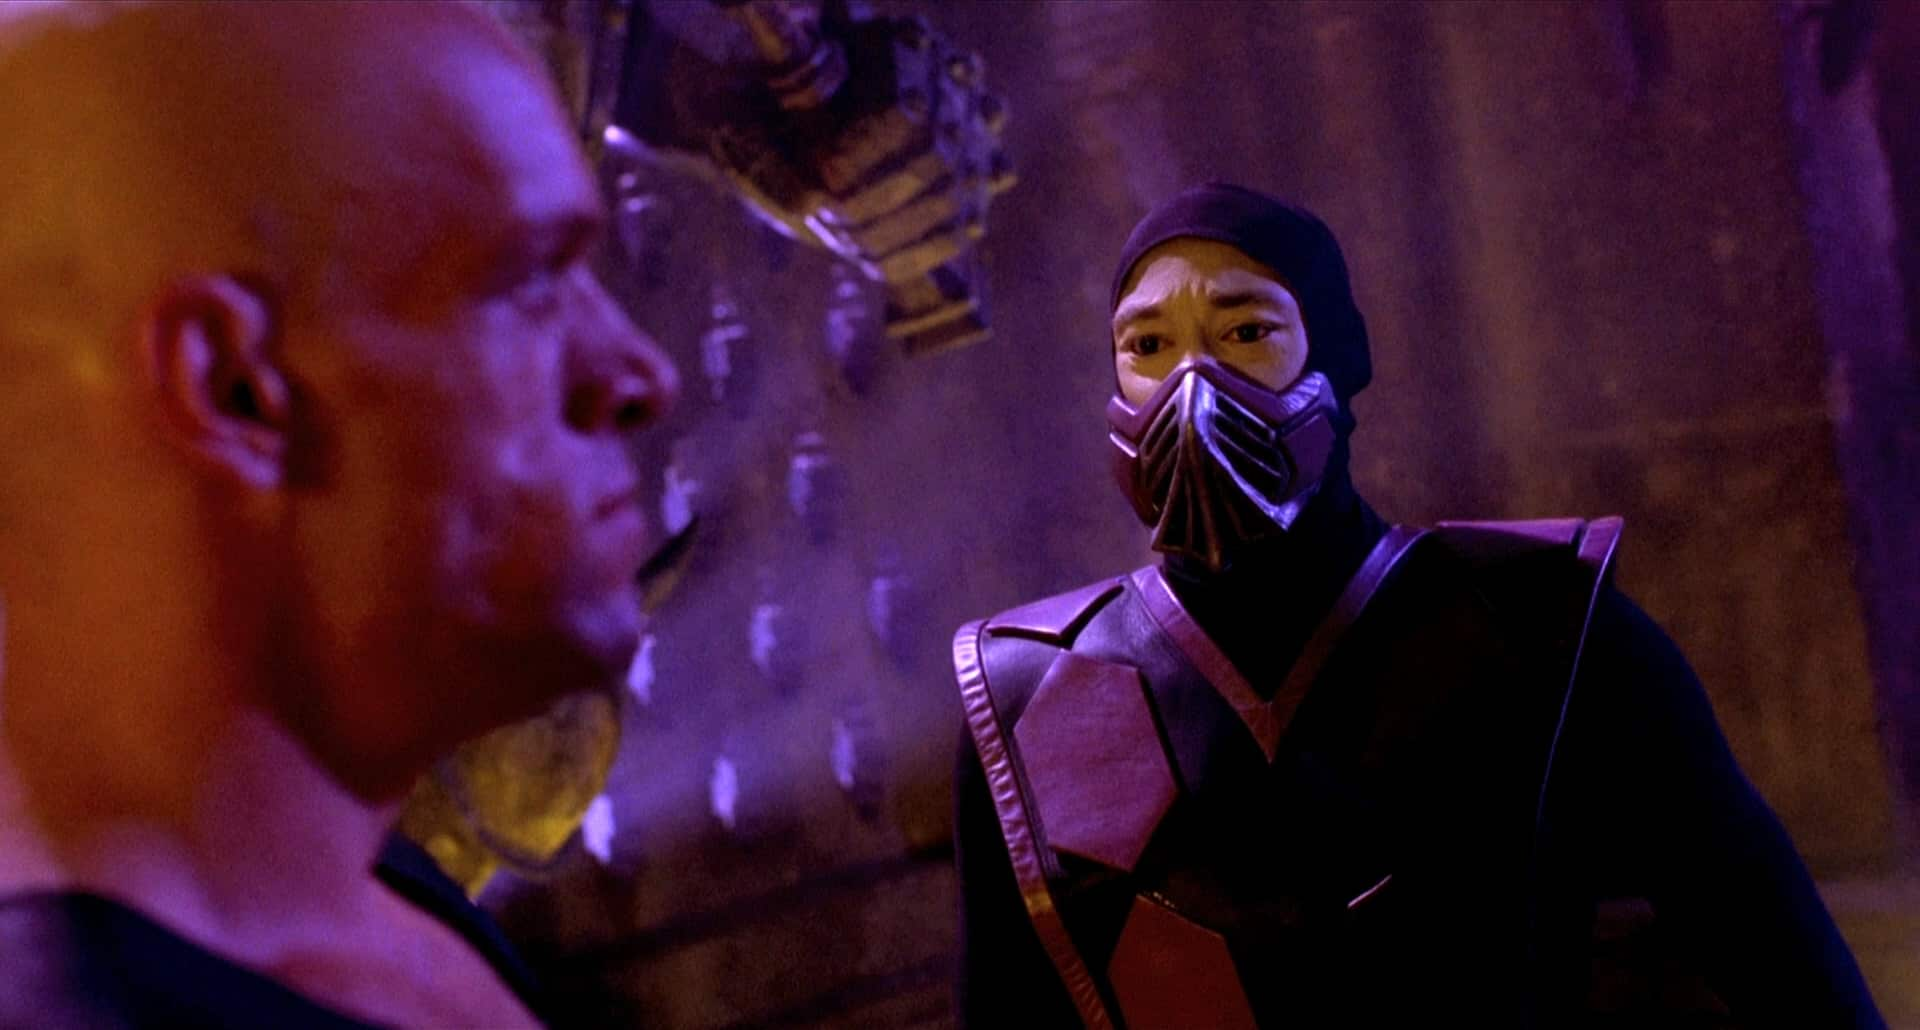 Mortal Kombat: Annihilation first fan service blockbuster, an extremely bad movie with lessons to teach